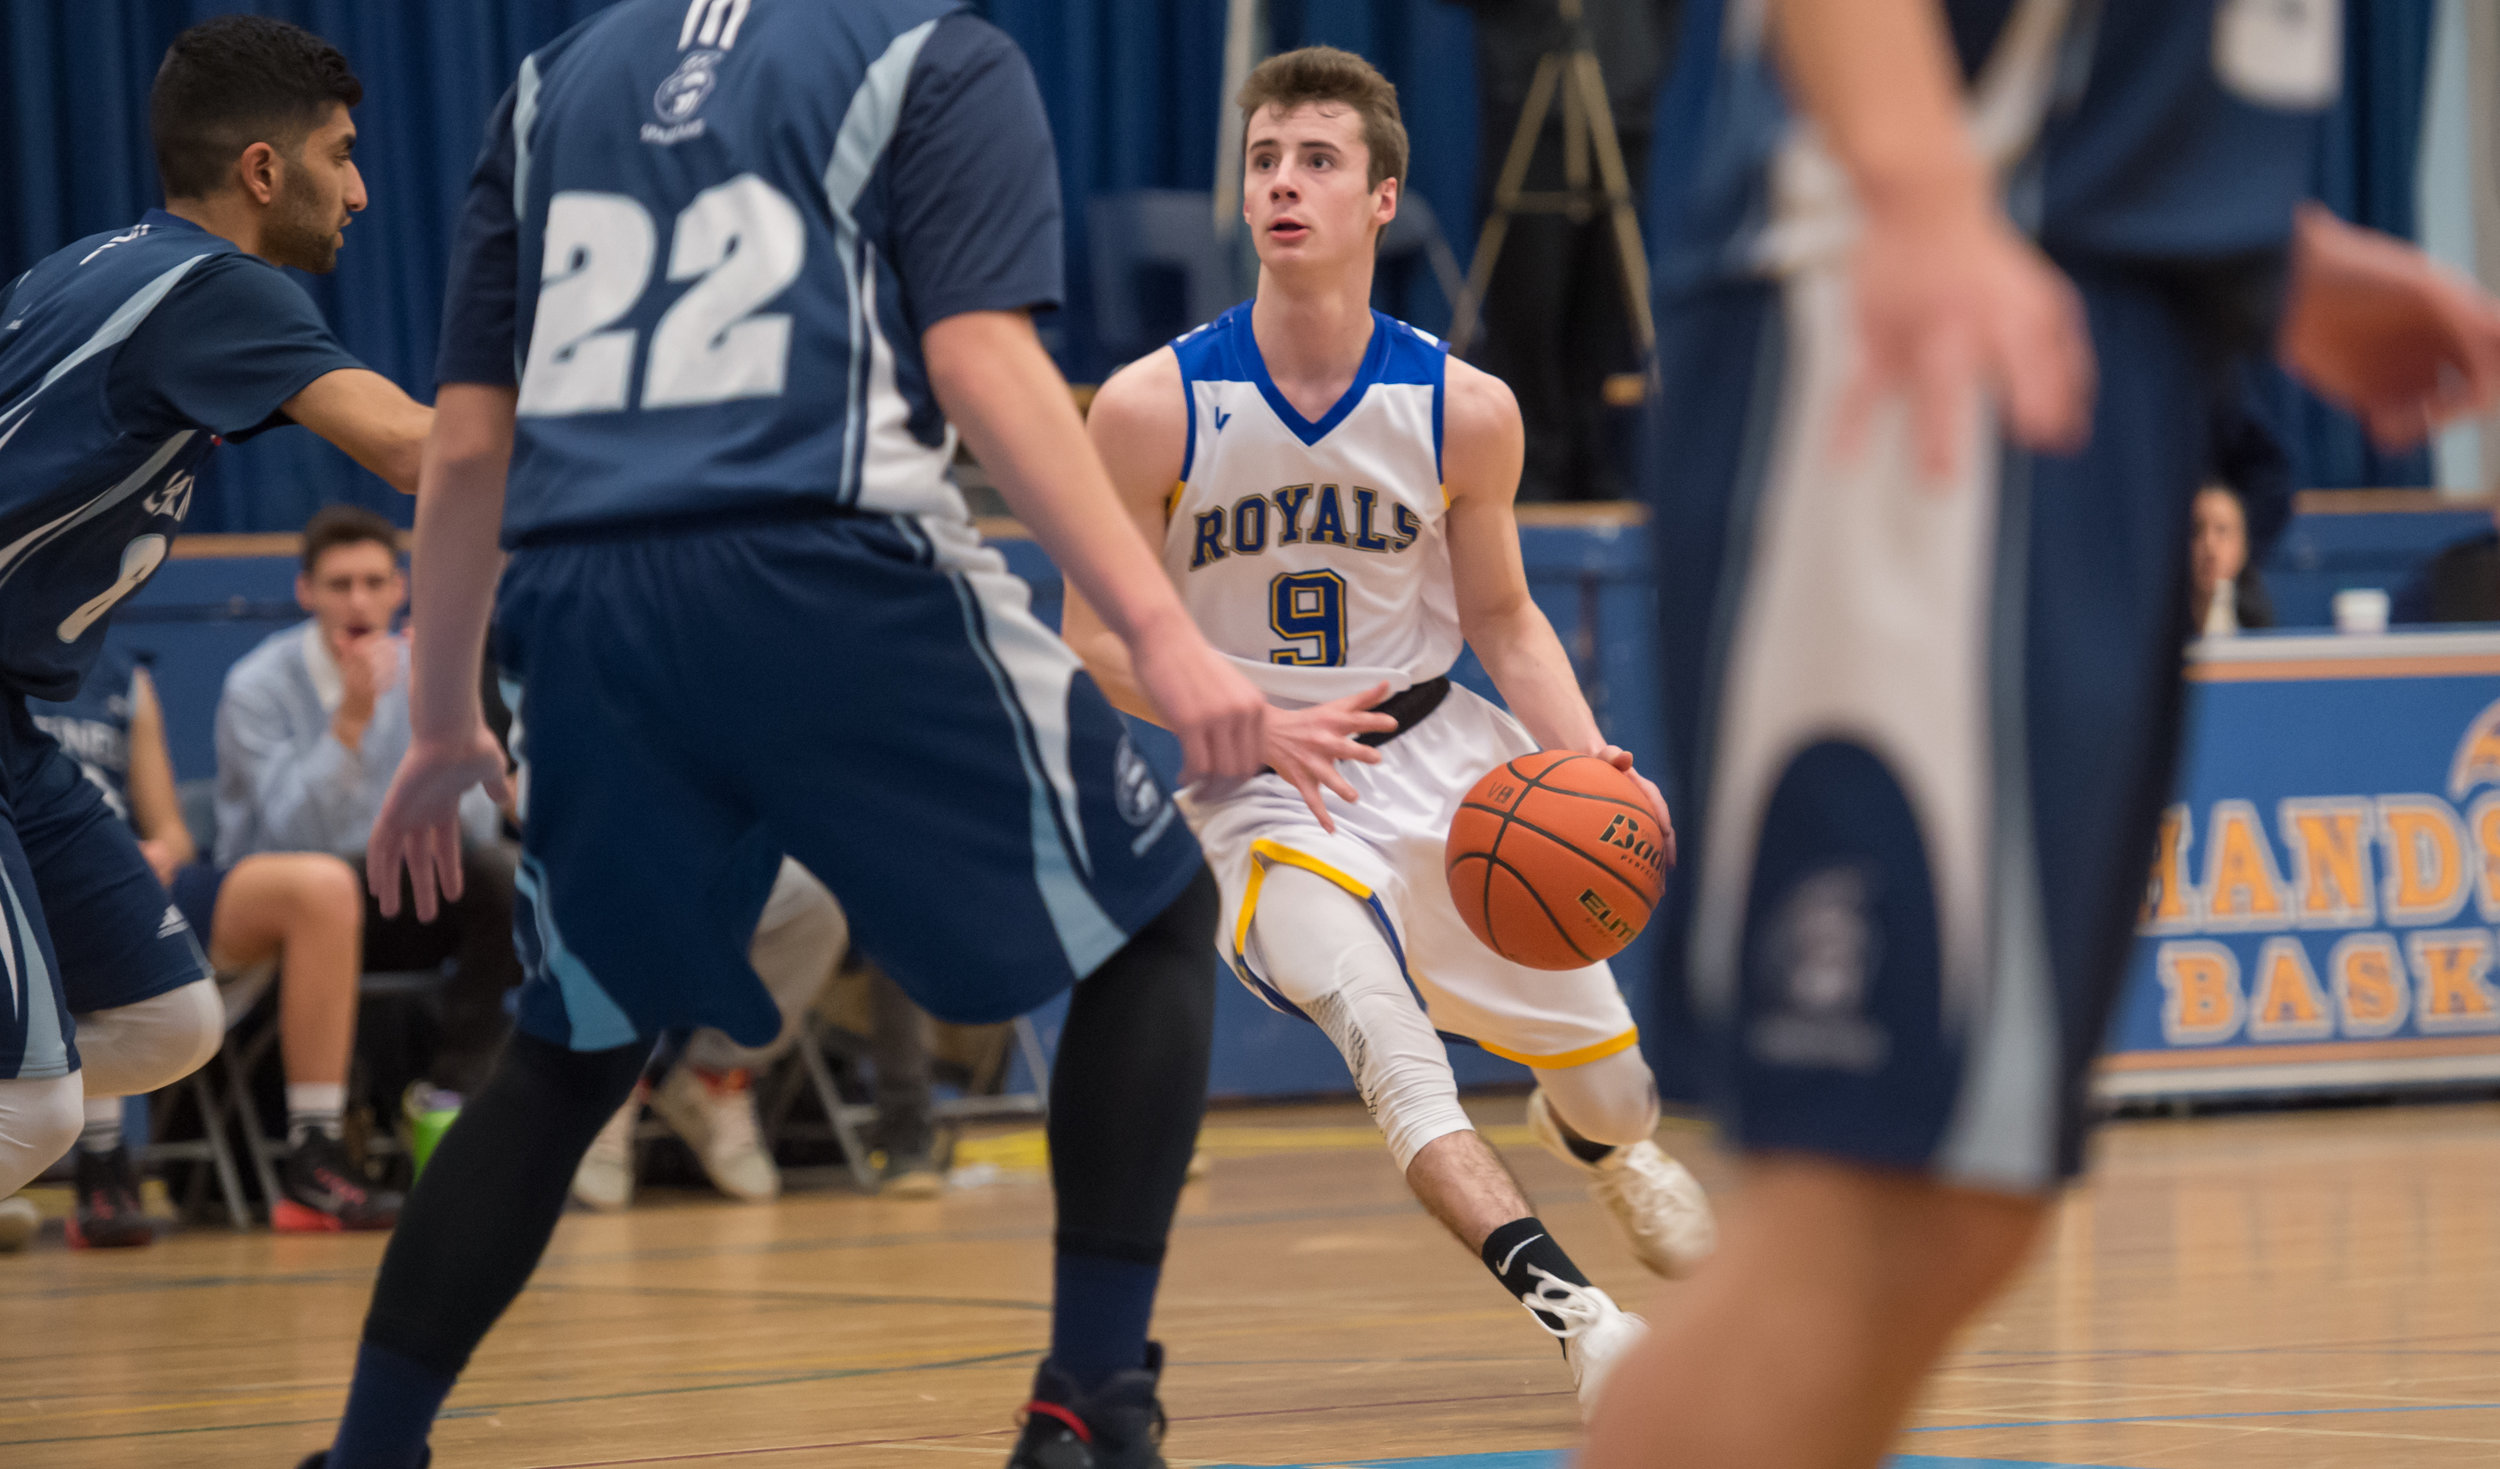 Handsworth's Player of the Game, Nate Watters pulls up at the elbow for 2 of his 19 points during Handsworth's opening round victory over the Sentinel Spartans in AAAA Howe Sound action.